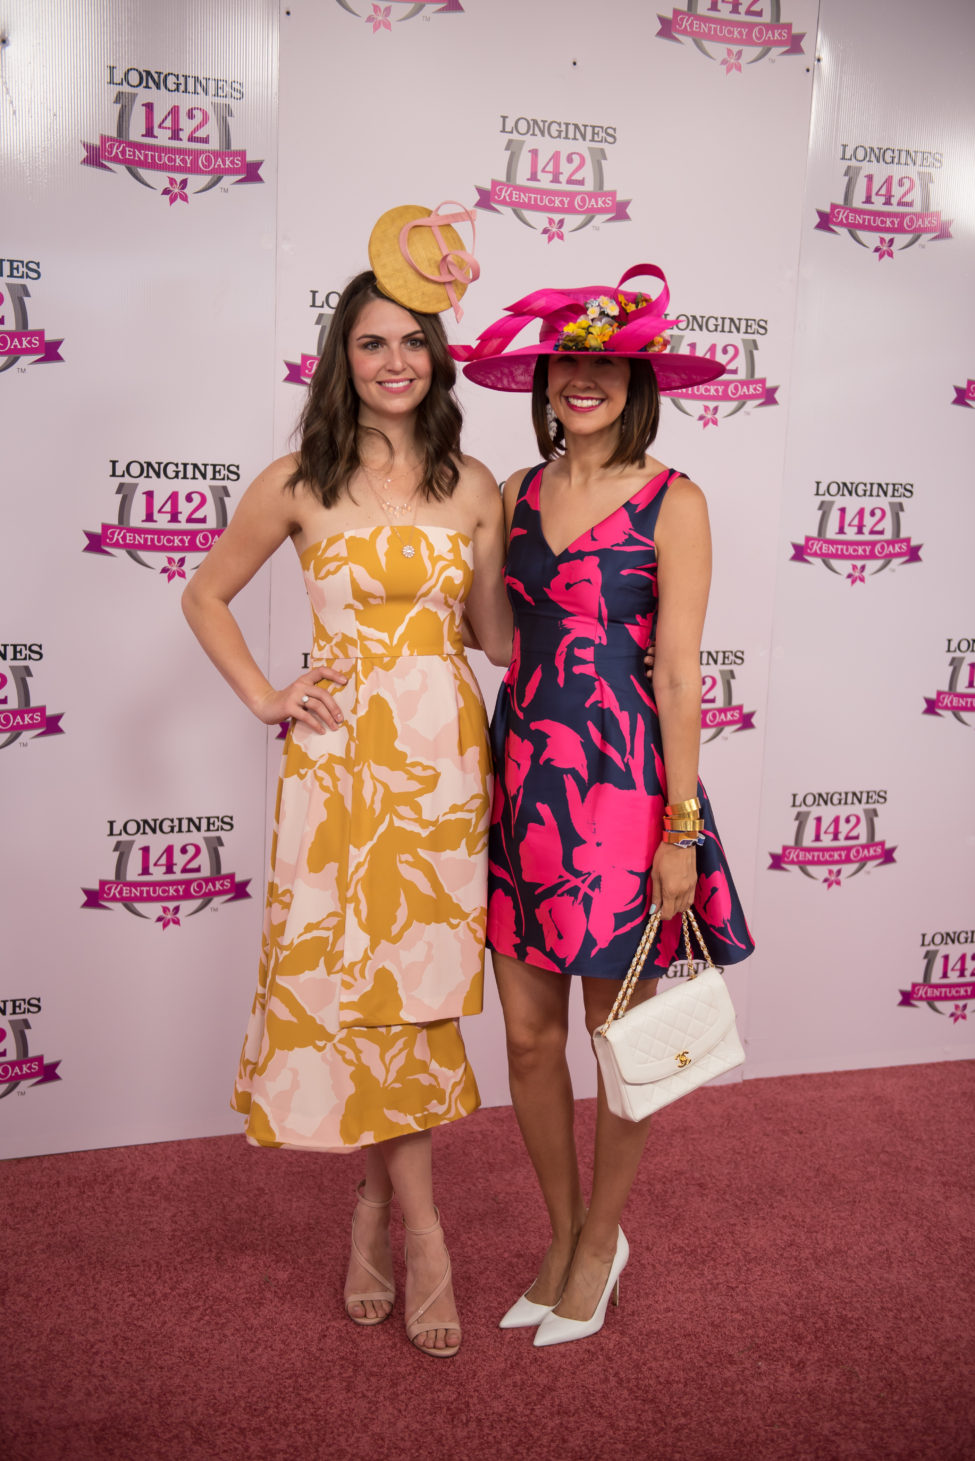 990354ddff What to Wear to the Kentucky Derby - Carrie Colbert